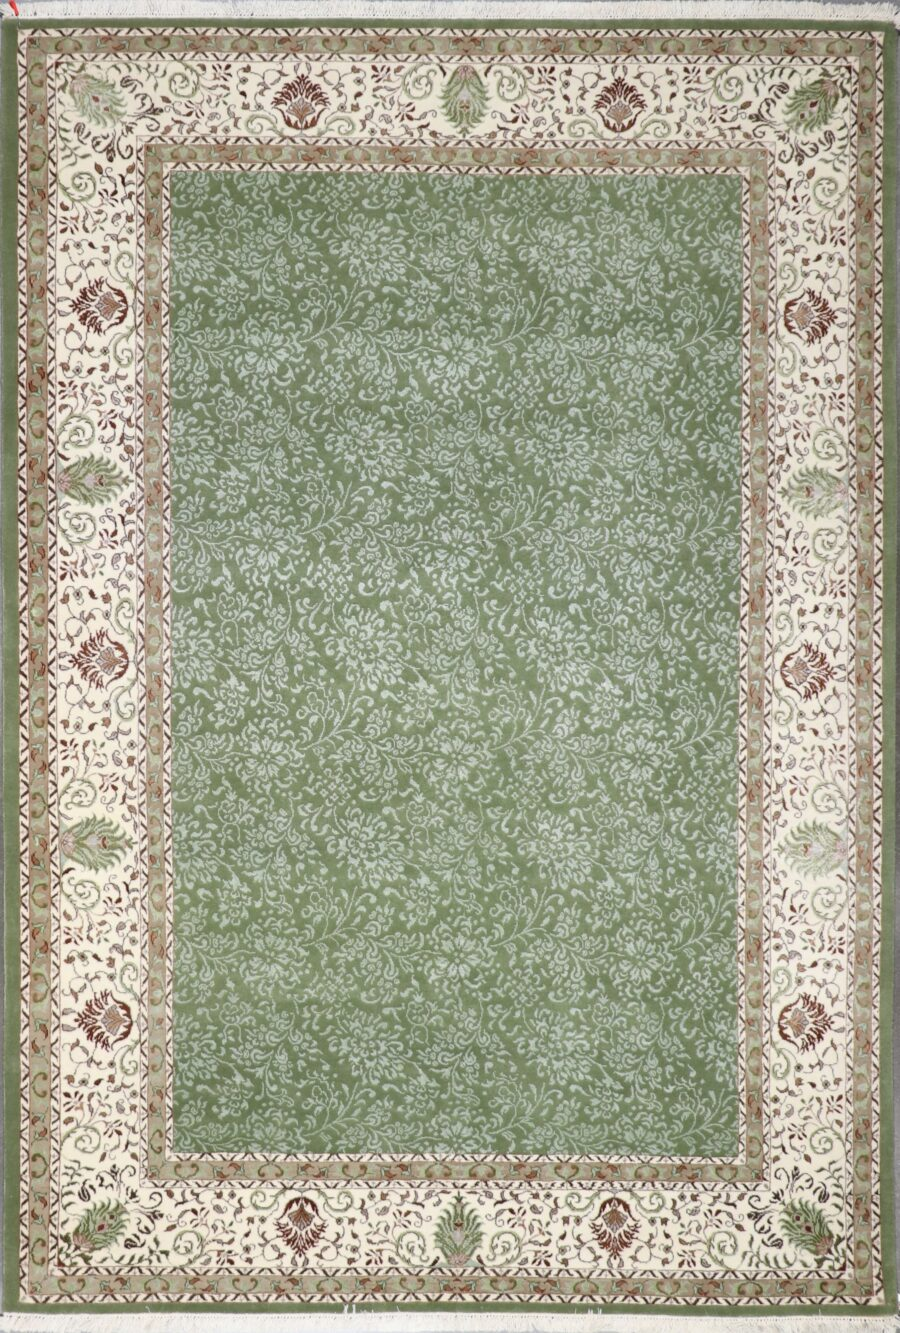 """6'5""""x9'3"""" Decorative Green Wool & Silk Hand-Knotted Rug - Direct Rug Import   Rugs in Chicago, Indiana,South Bend,Granger"""